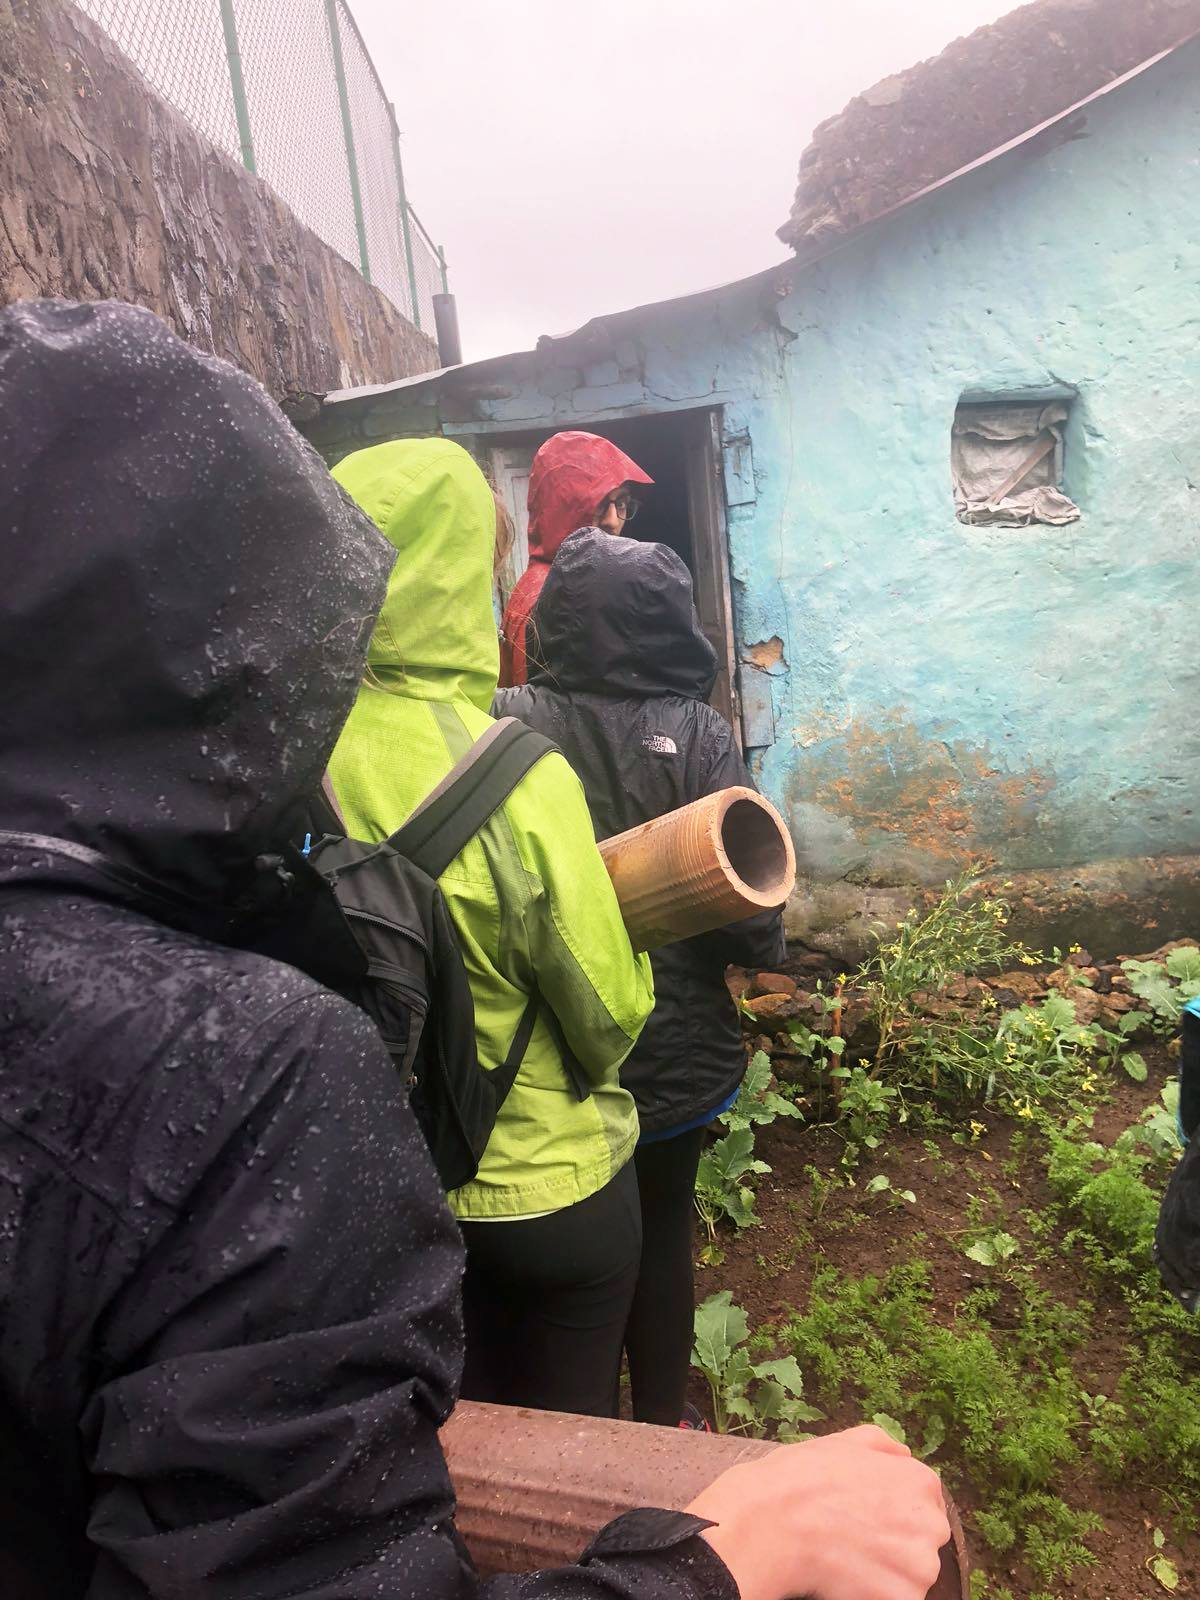 Preventing respiratory infections in Kodaikanal, India. SIHFers installed chimneys in homes without cookstove ventilation.